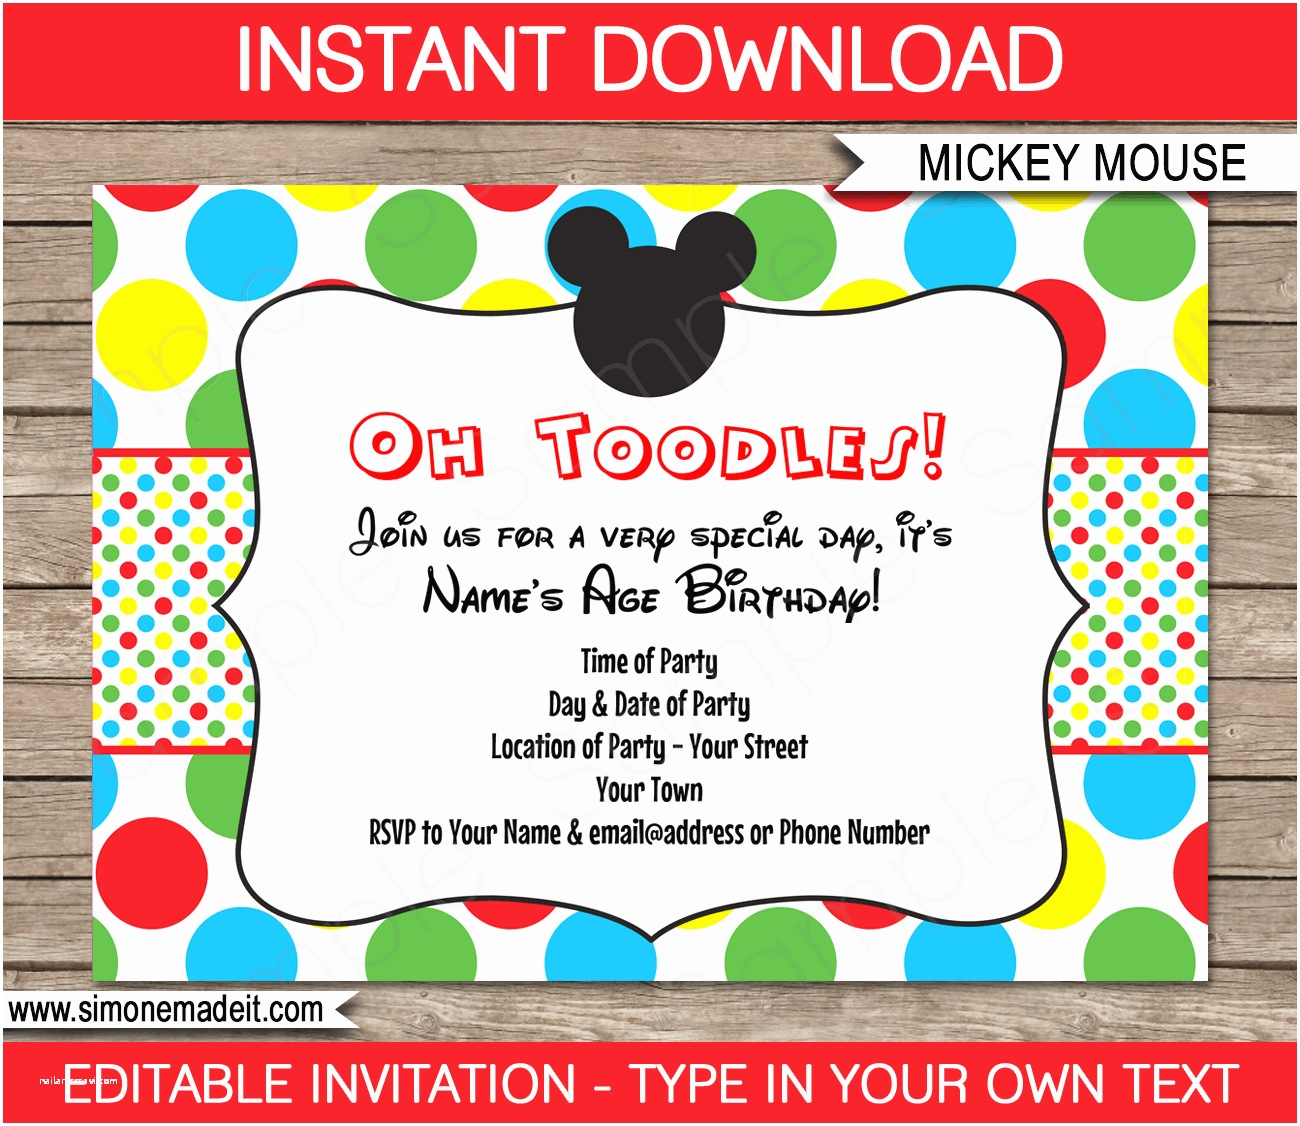 Mickey Mouse Birthday Party Invitations Mickey Mouse Party Invitations Template